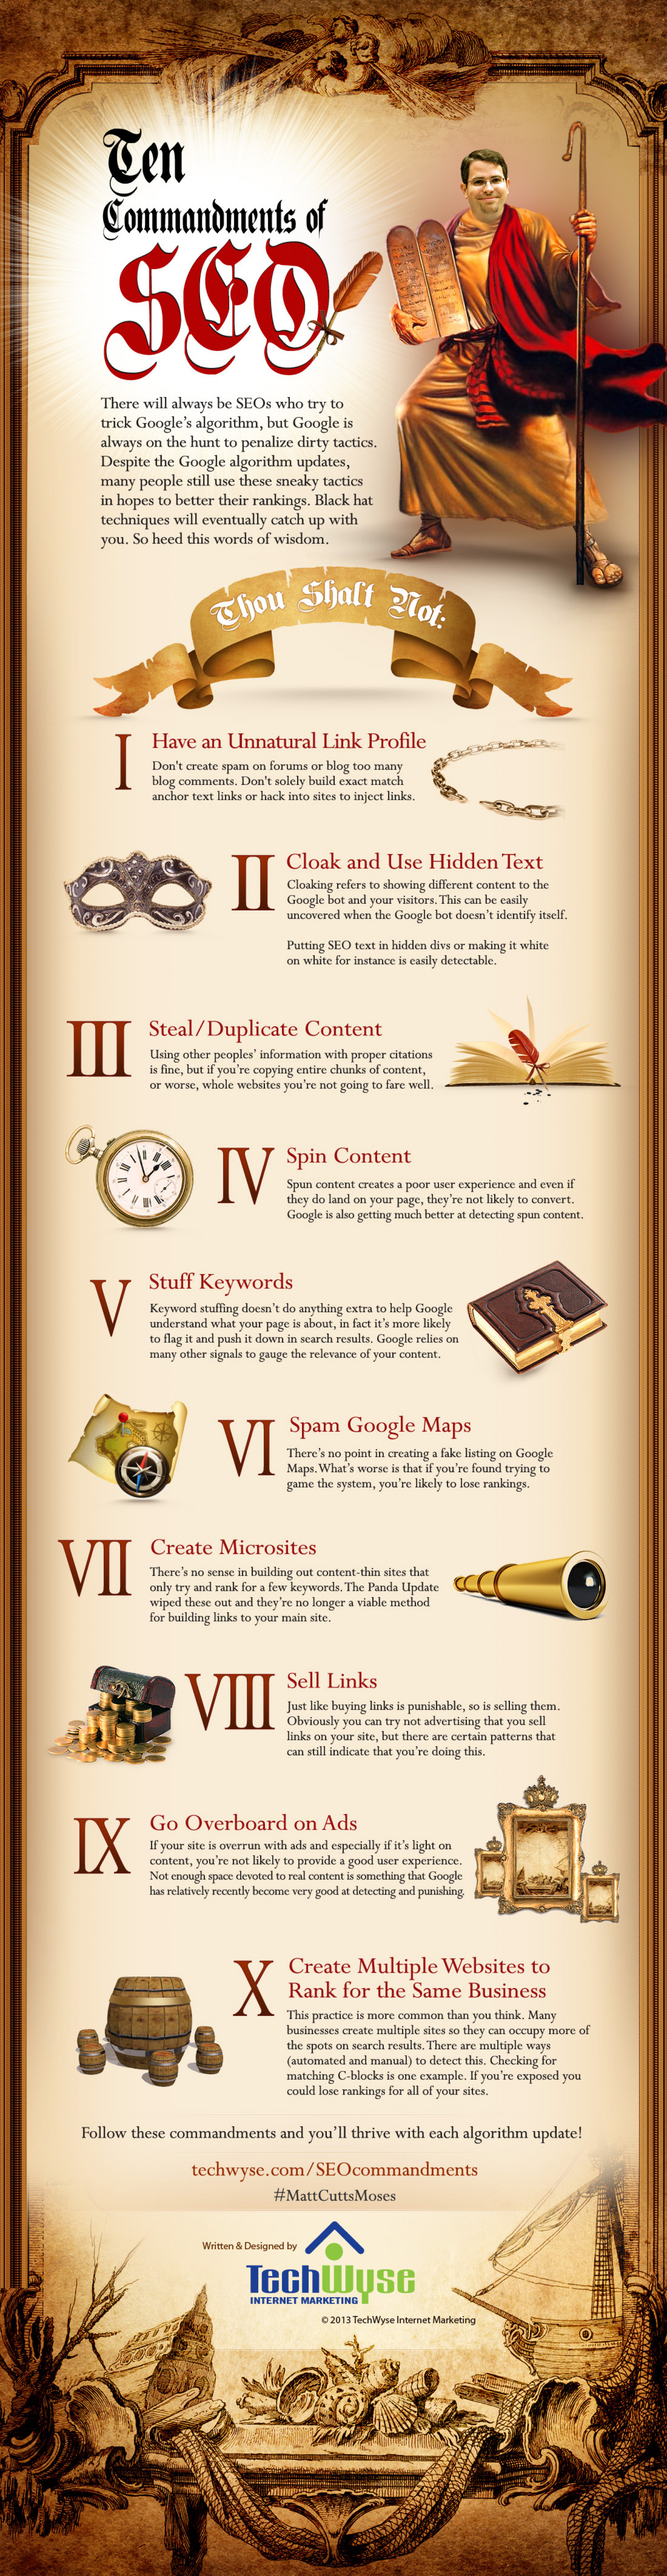 10 Commandments of SEO Infographic